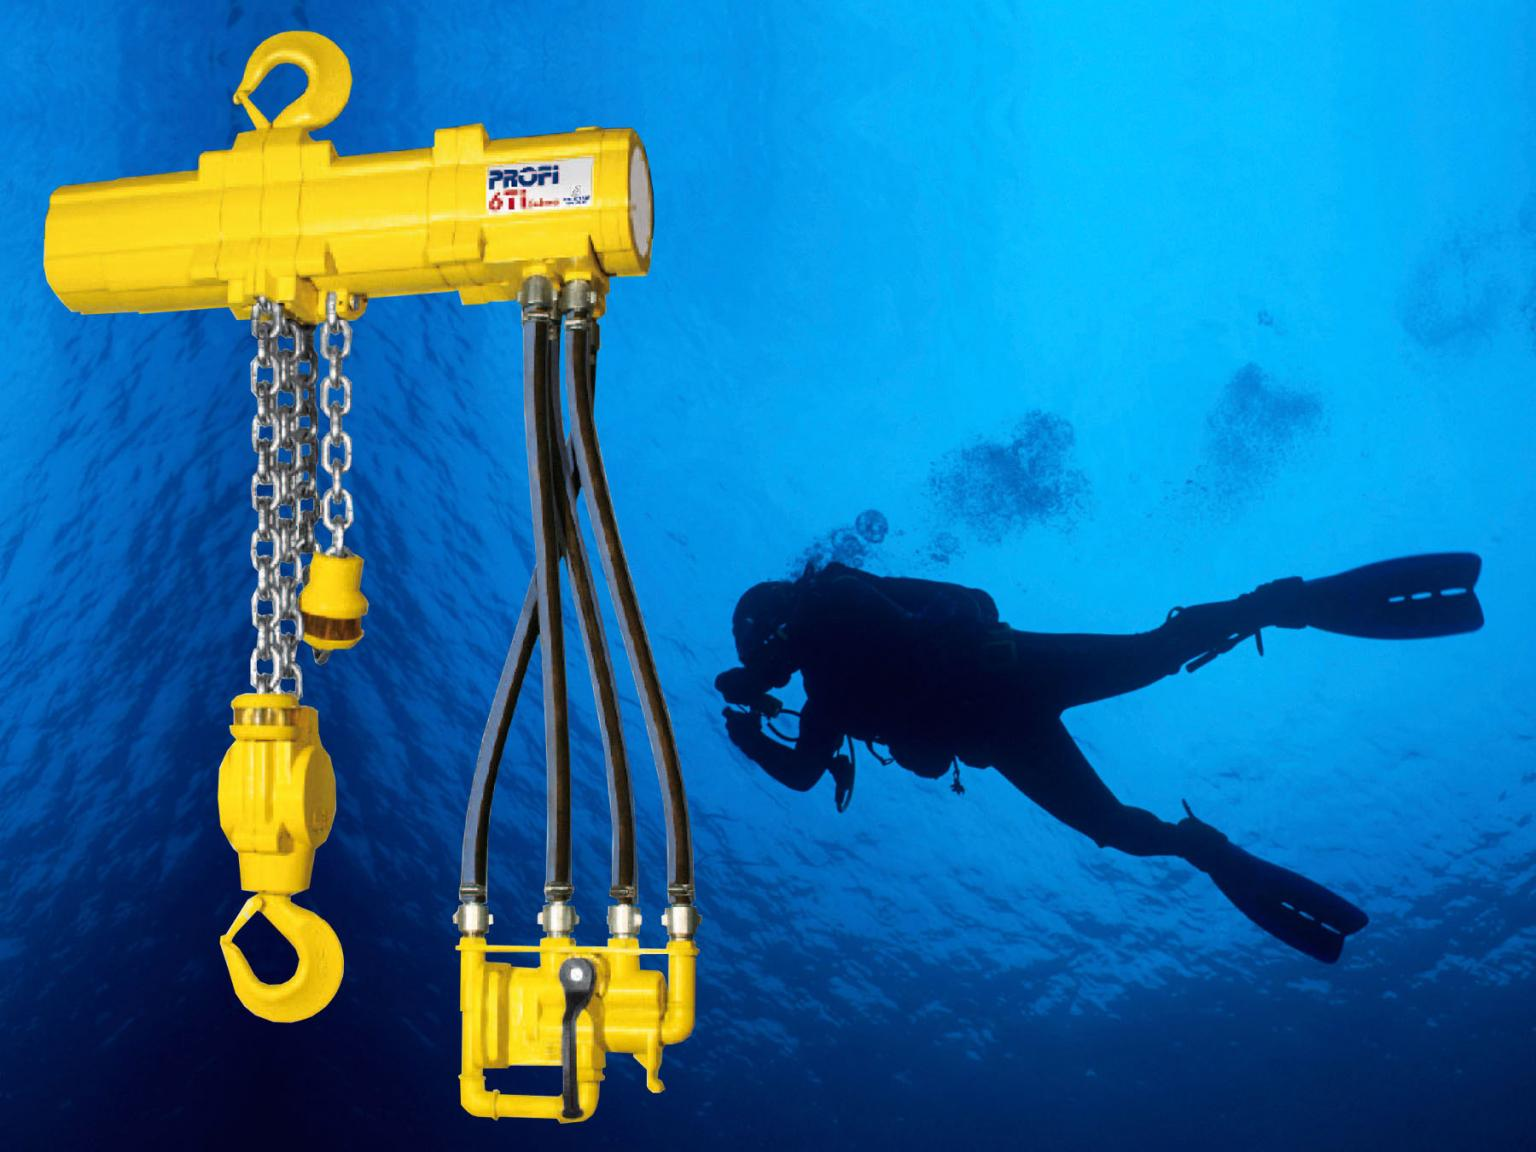 A Profi 6Ti hoist from the J D Neuhaus range, purpose designed for subsea operation and shown equipped with diver friendly control valve